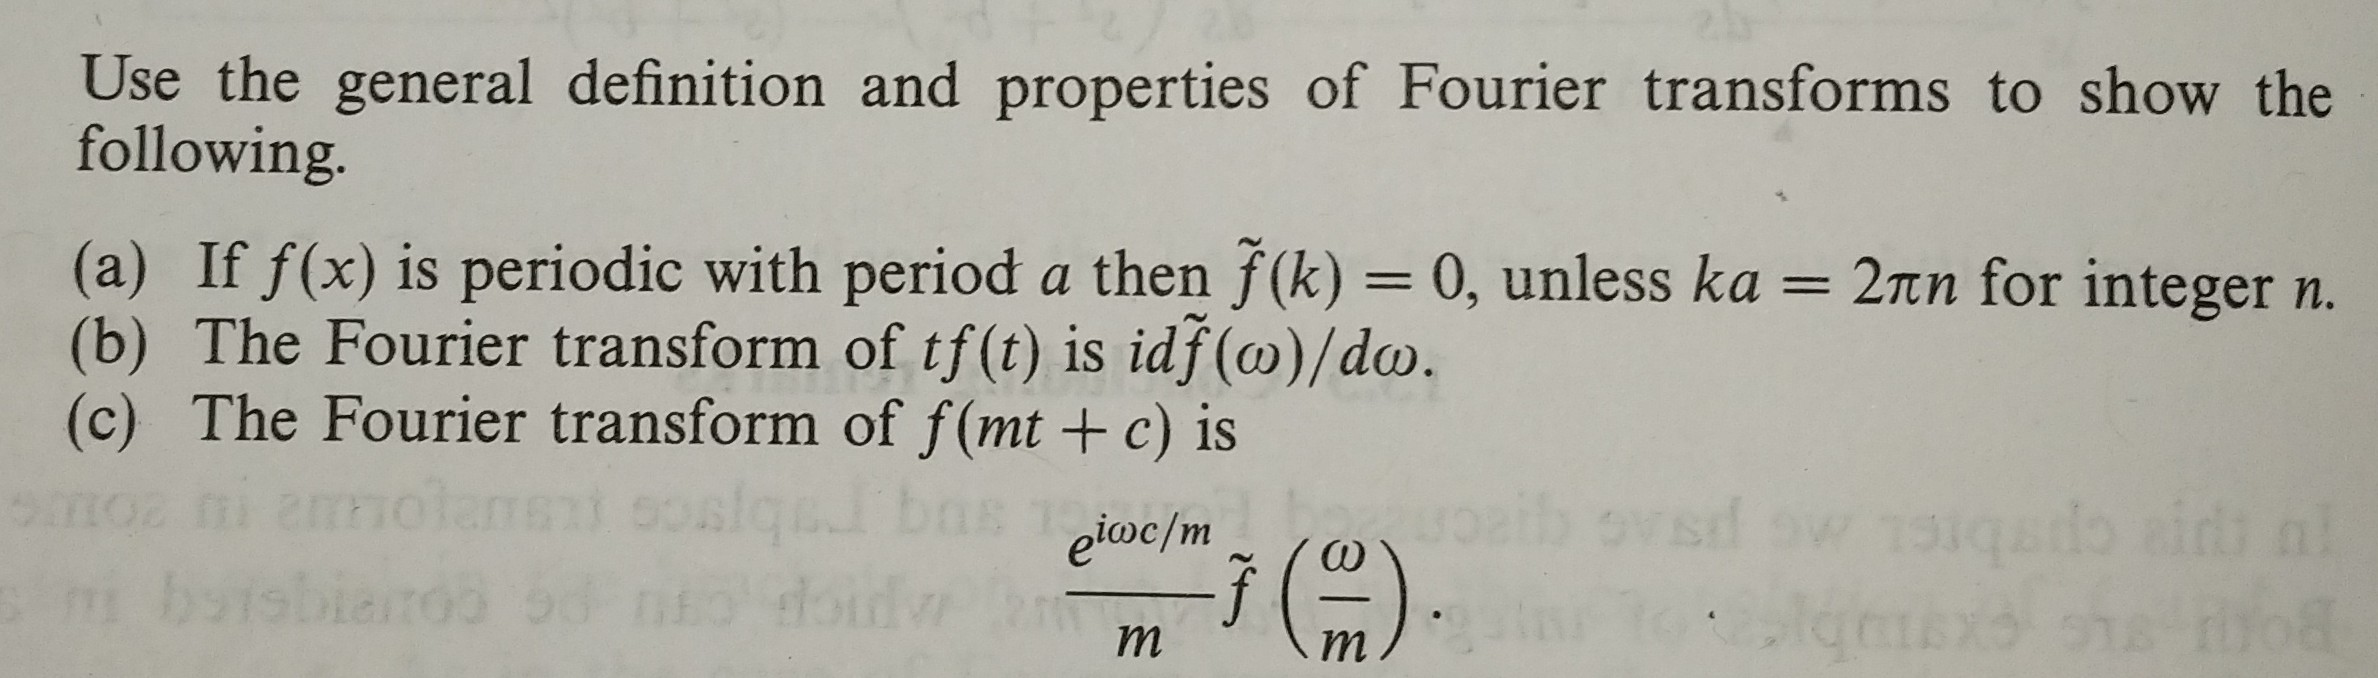 Use the general definition and properties of Fourier transforms to show the following (a) If f(x) is periodic with period a then f(k)- 0, unless ka (b) The Fourier transform of tf(t) is idf(co)/do. (c) The Fourier transform of f(mt +c) is 2πη for integer n.